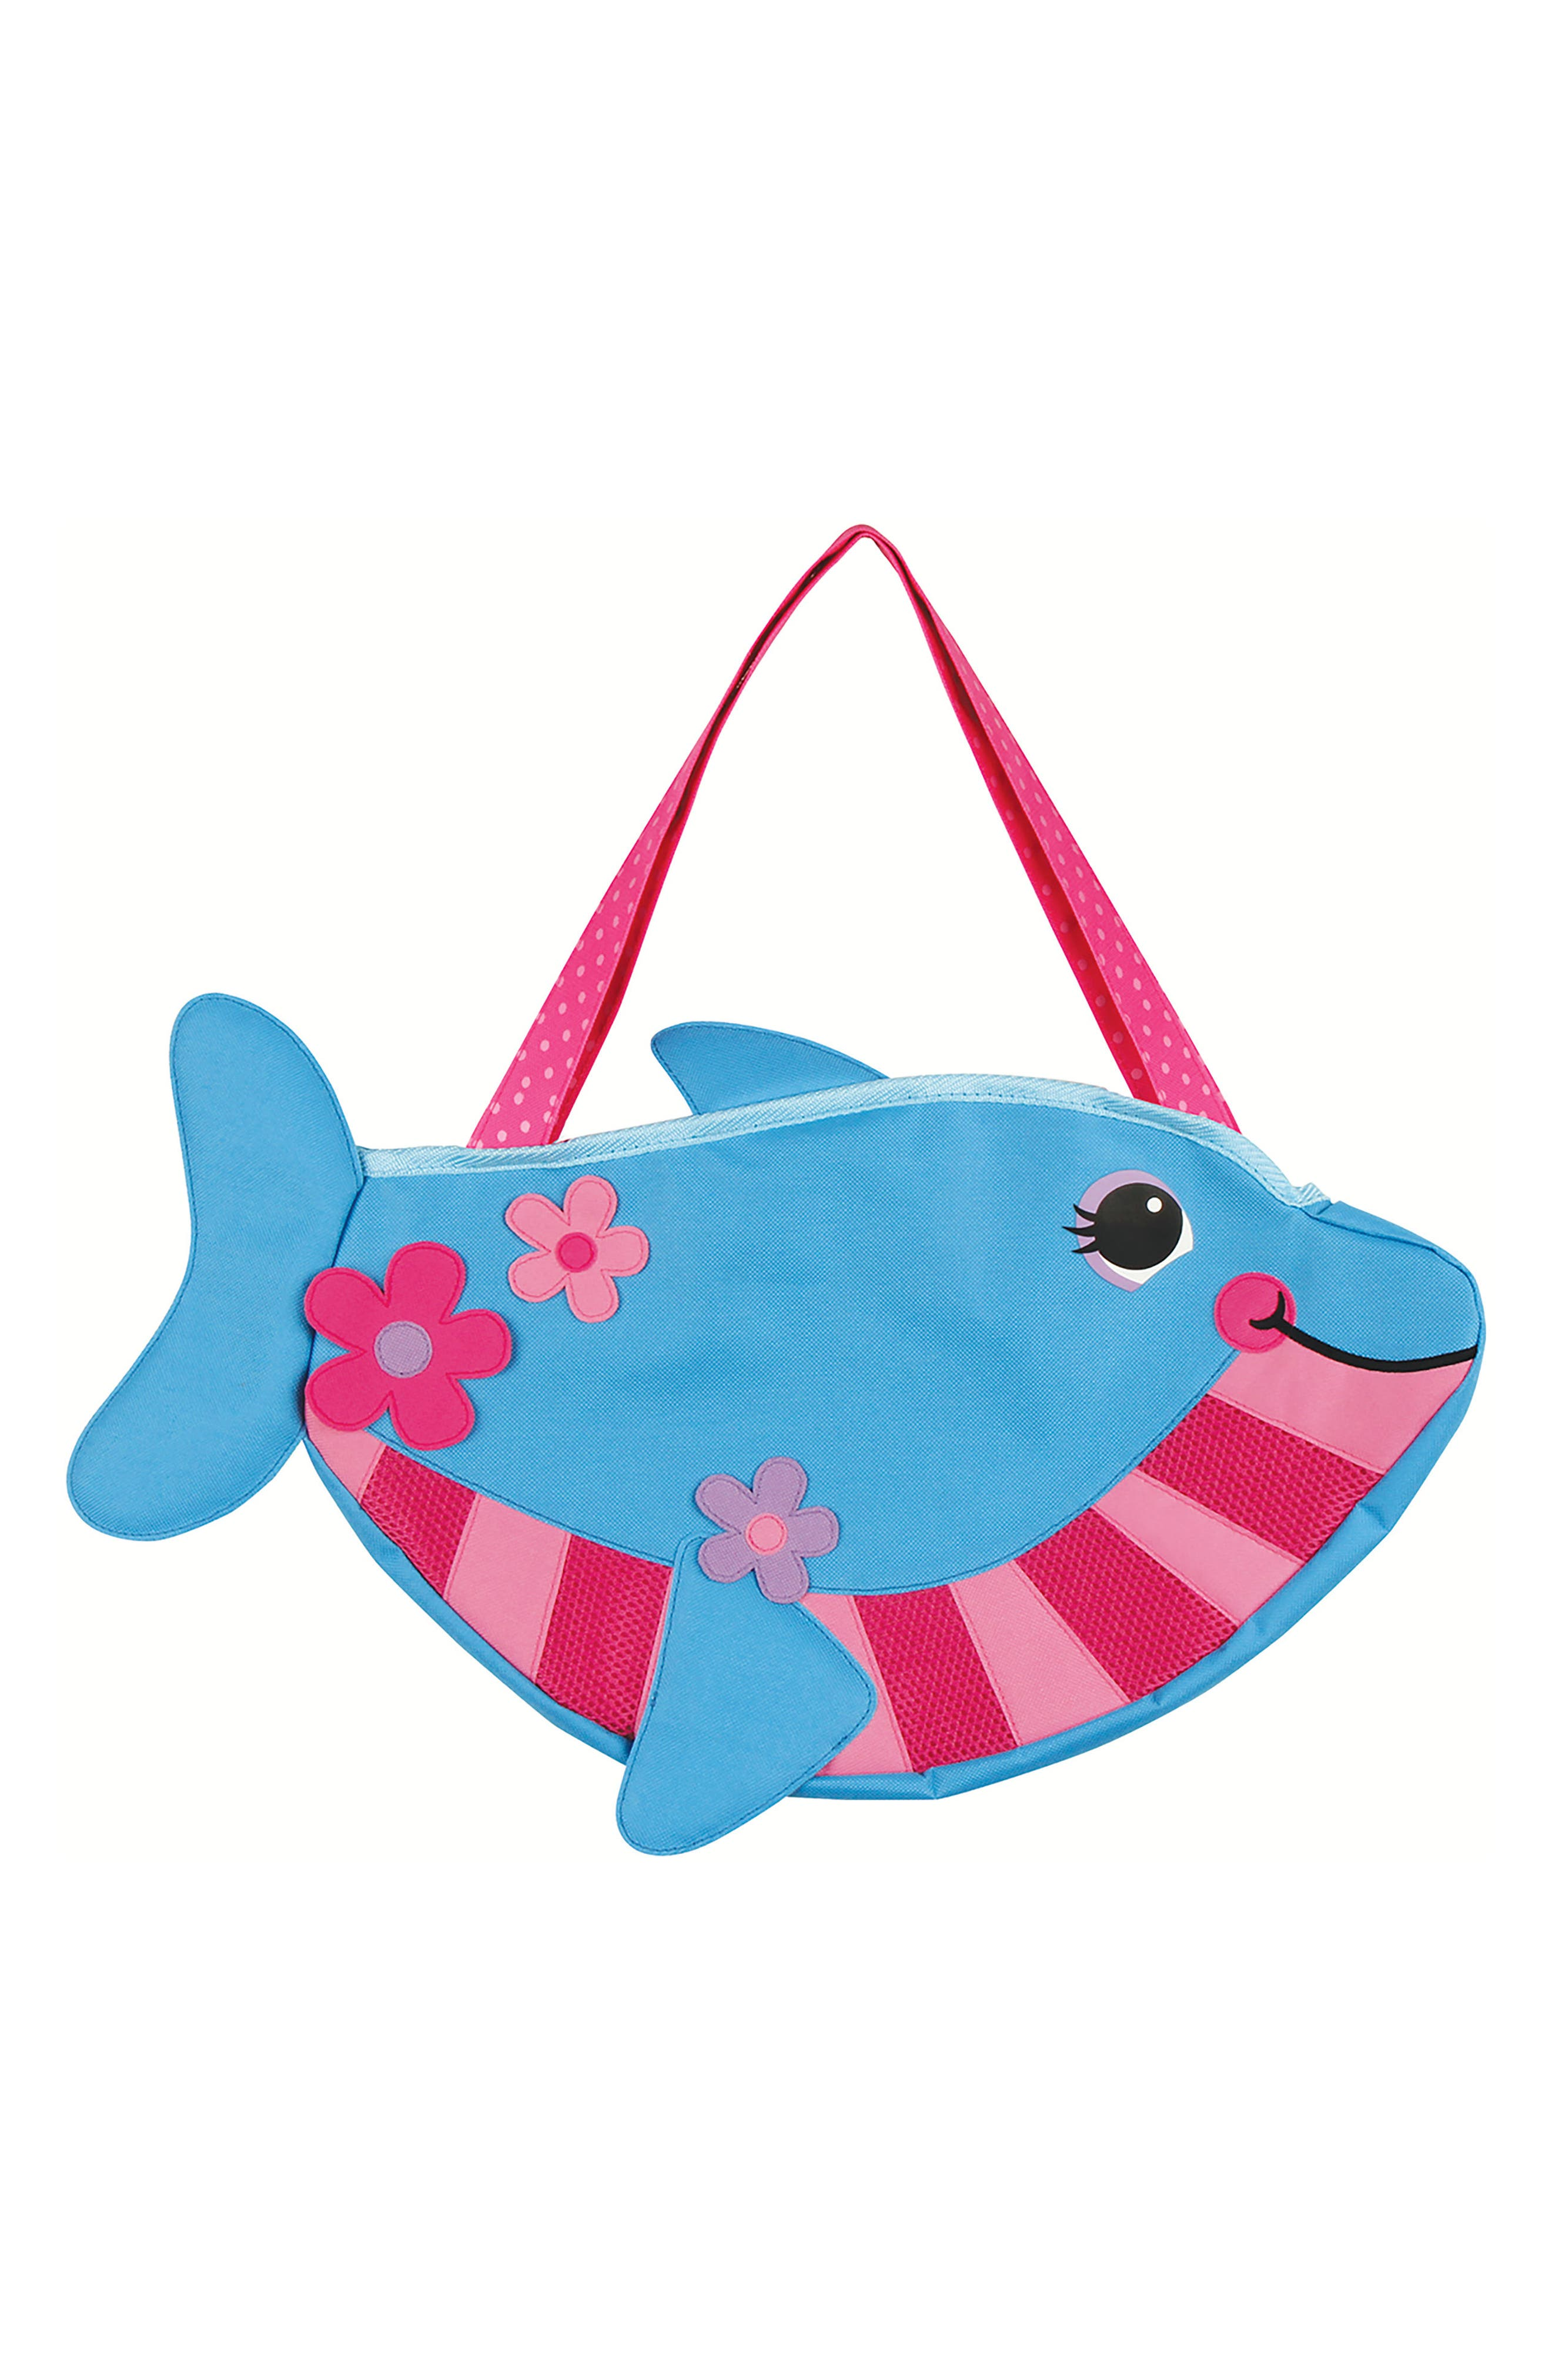 Beach Tote, Hooded Towel & Toys,                             Alternate thumbnail 6, color,                             BLUE DOLPHIN